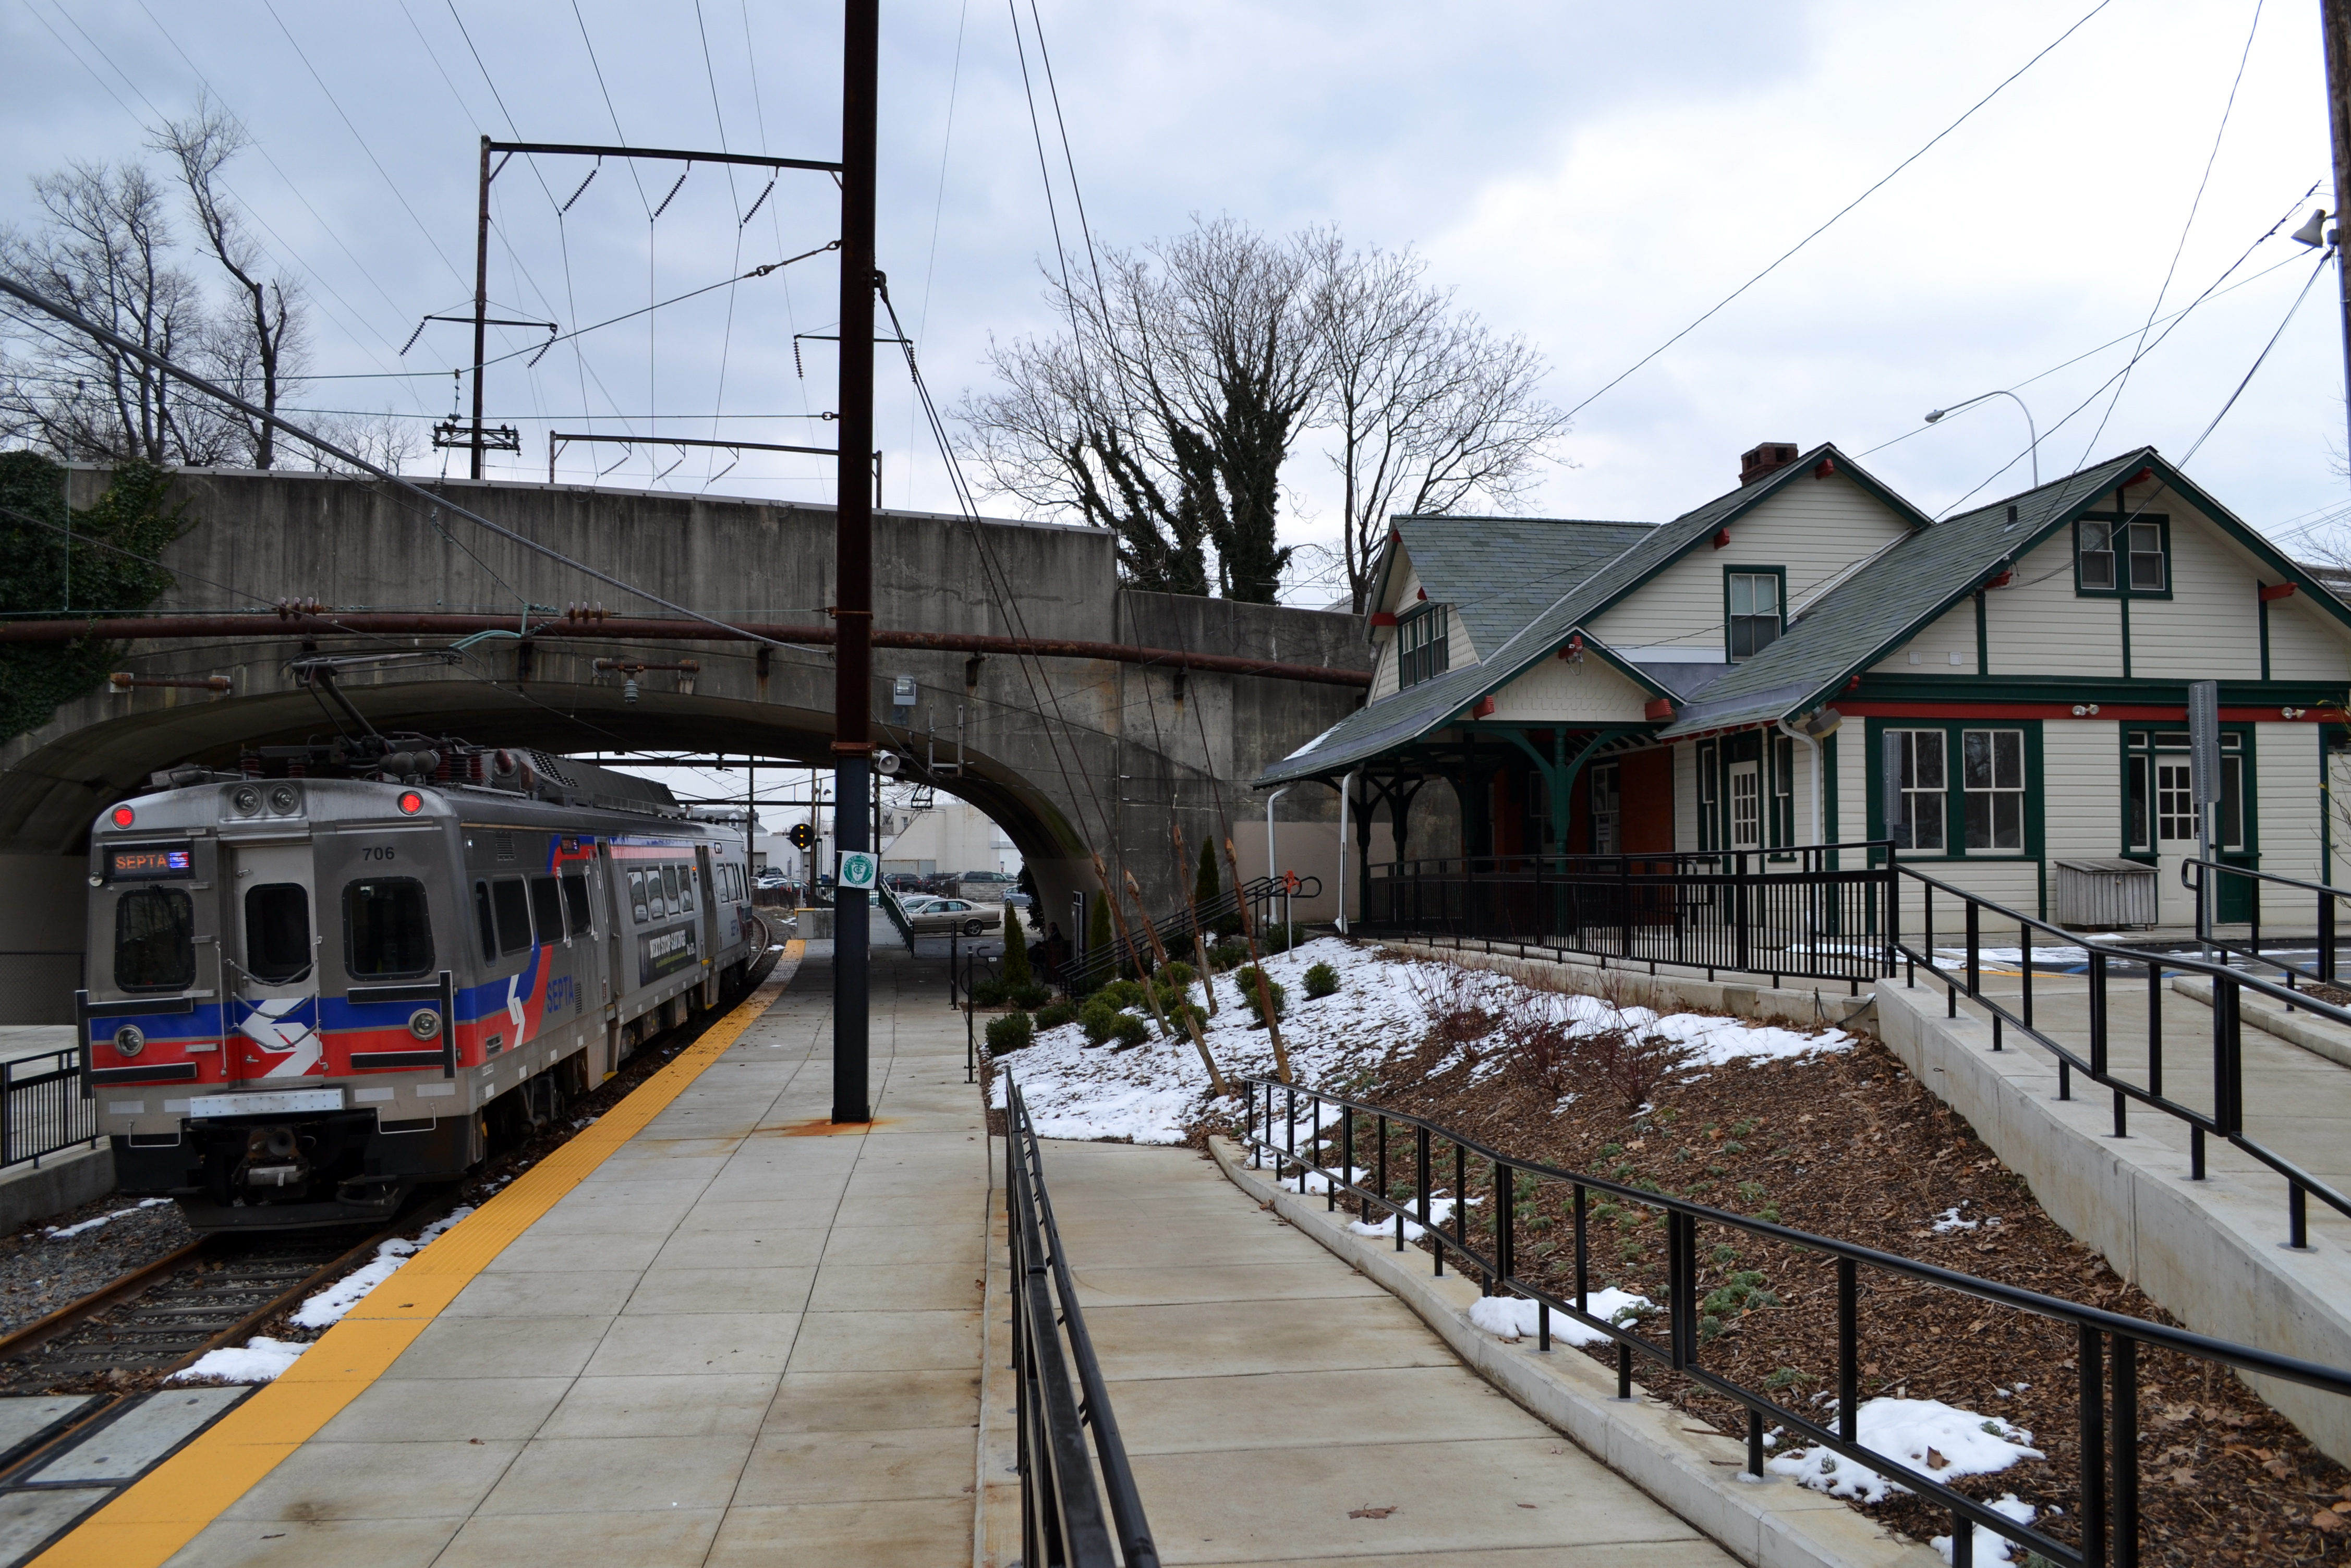 Lower Merion Historical Society nearing completion on Cynwyd Station historical renovation